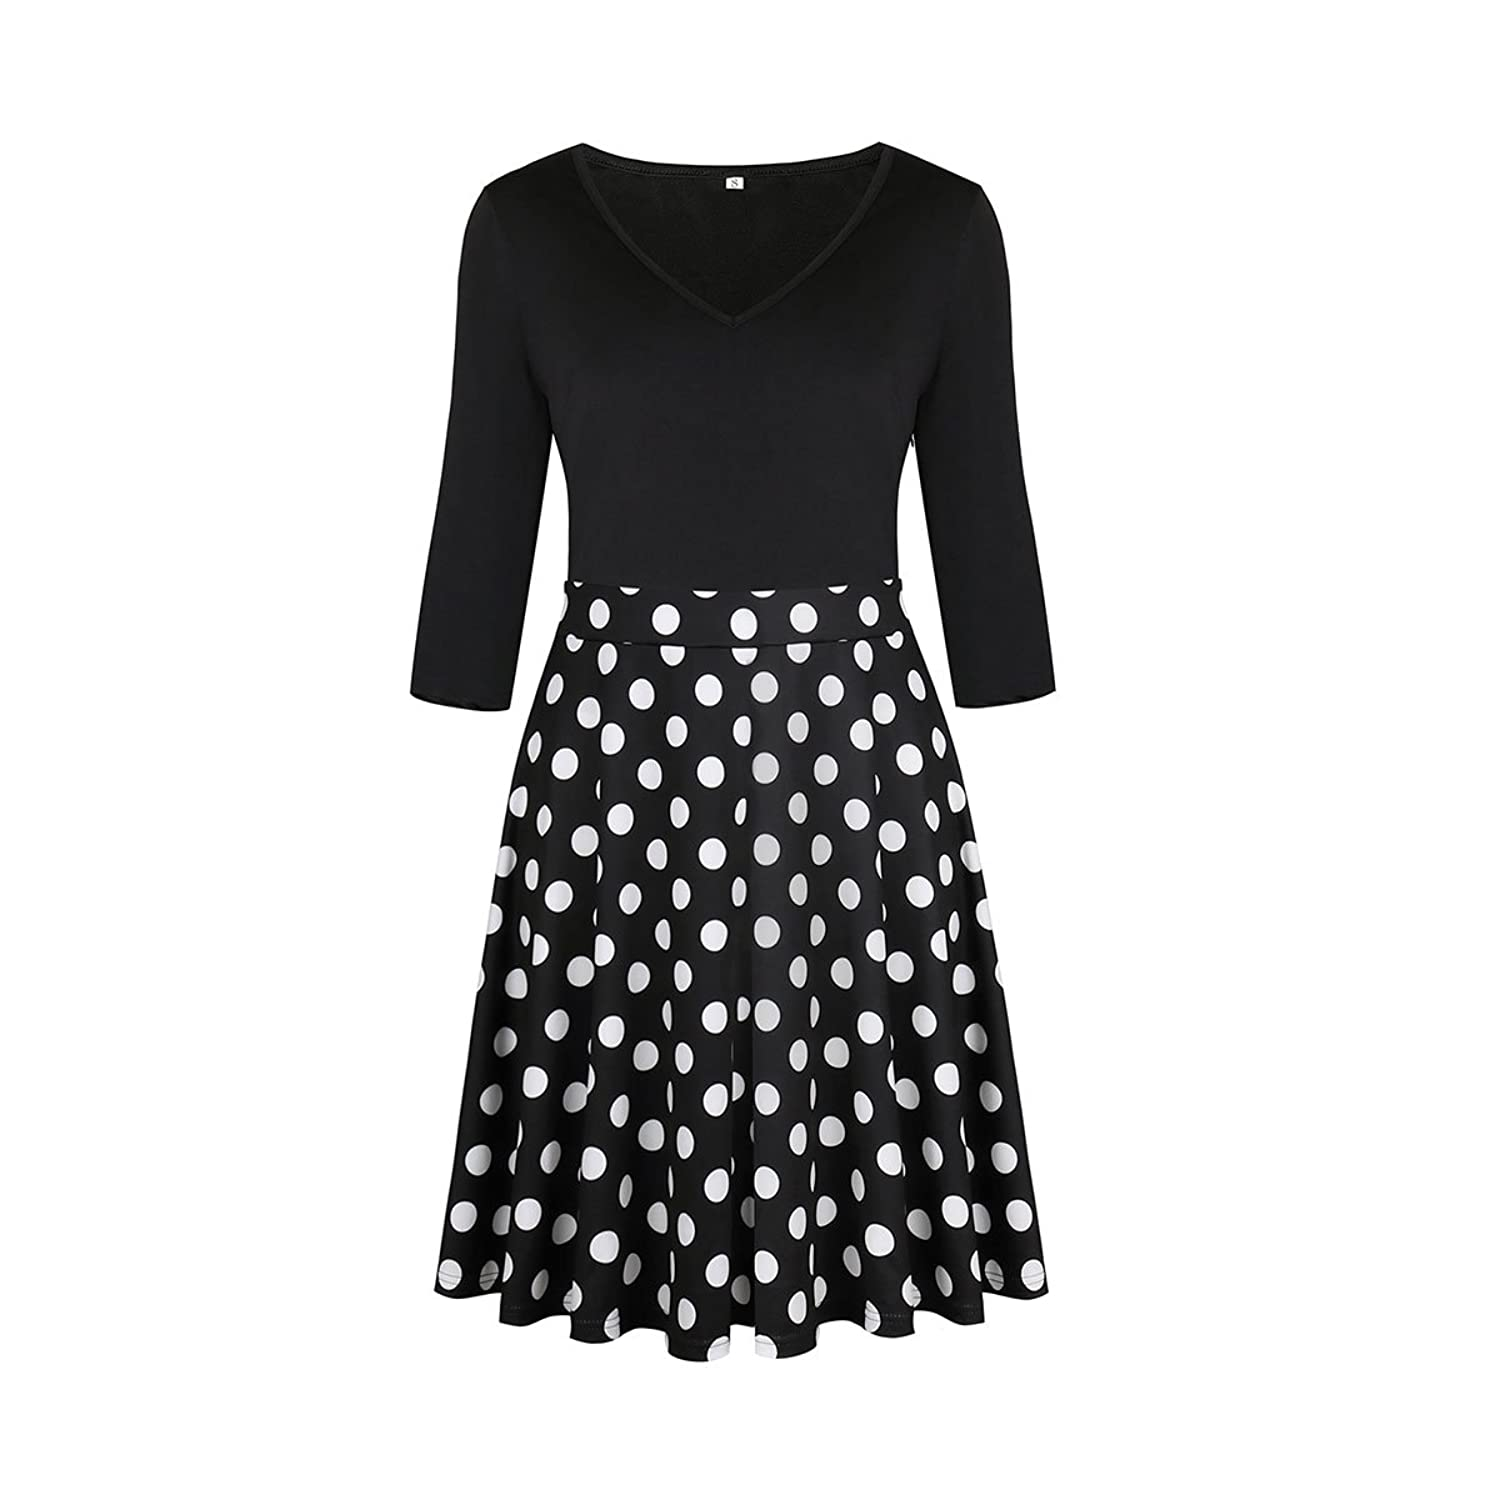 ECOLIVZIT Womens V-Neck Floral Dress Half Sleeves Casual Swing Midi Dress at Amazon Womens Clothing store: